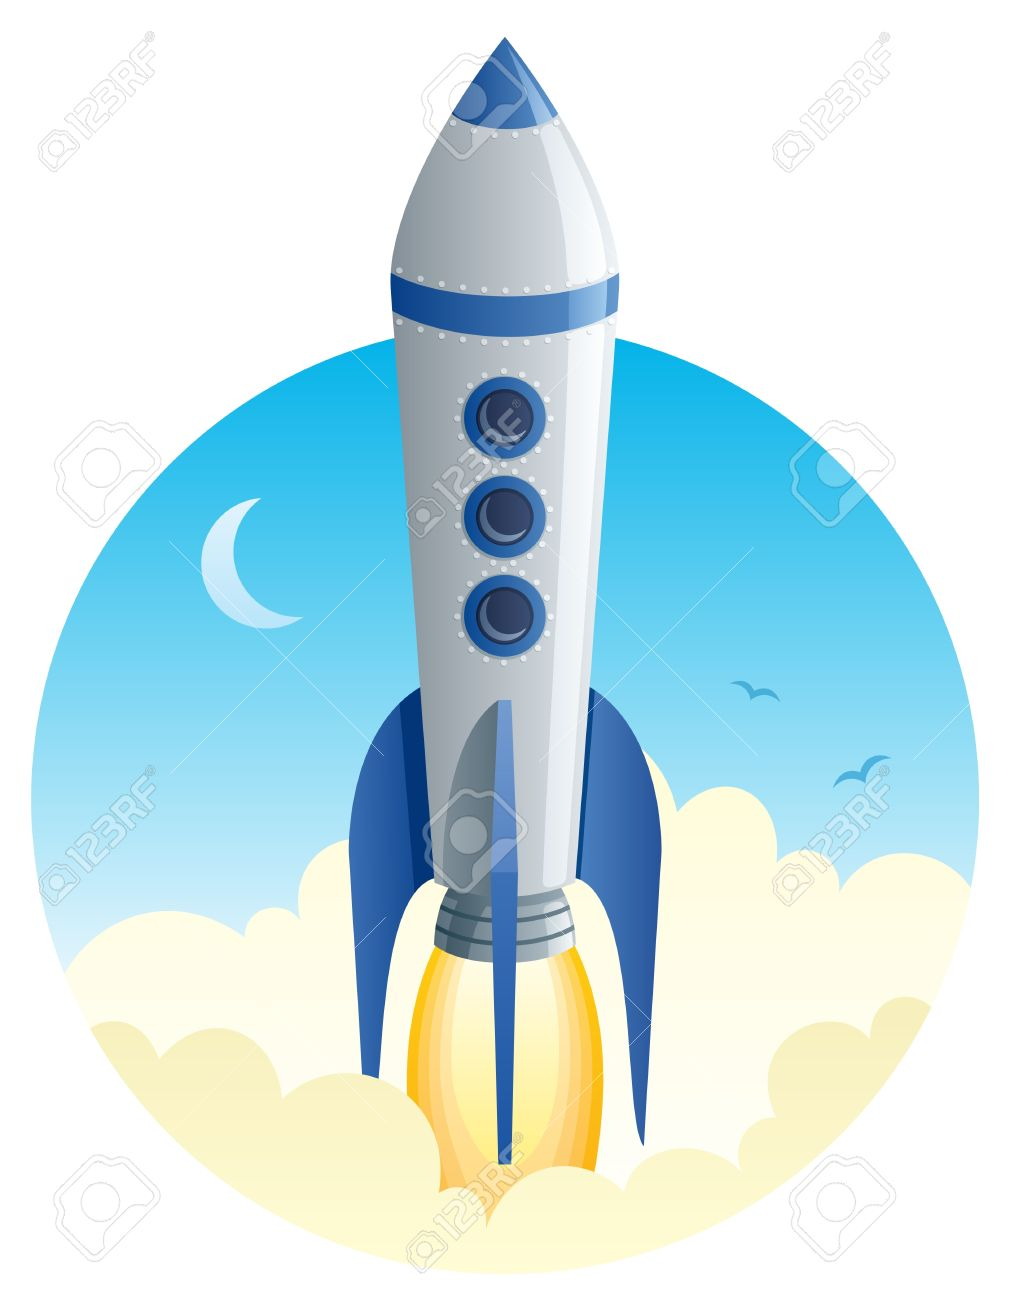 36 534 space rocket stock vector illustration and royalty free